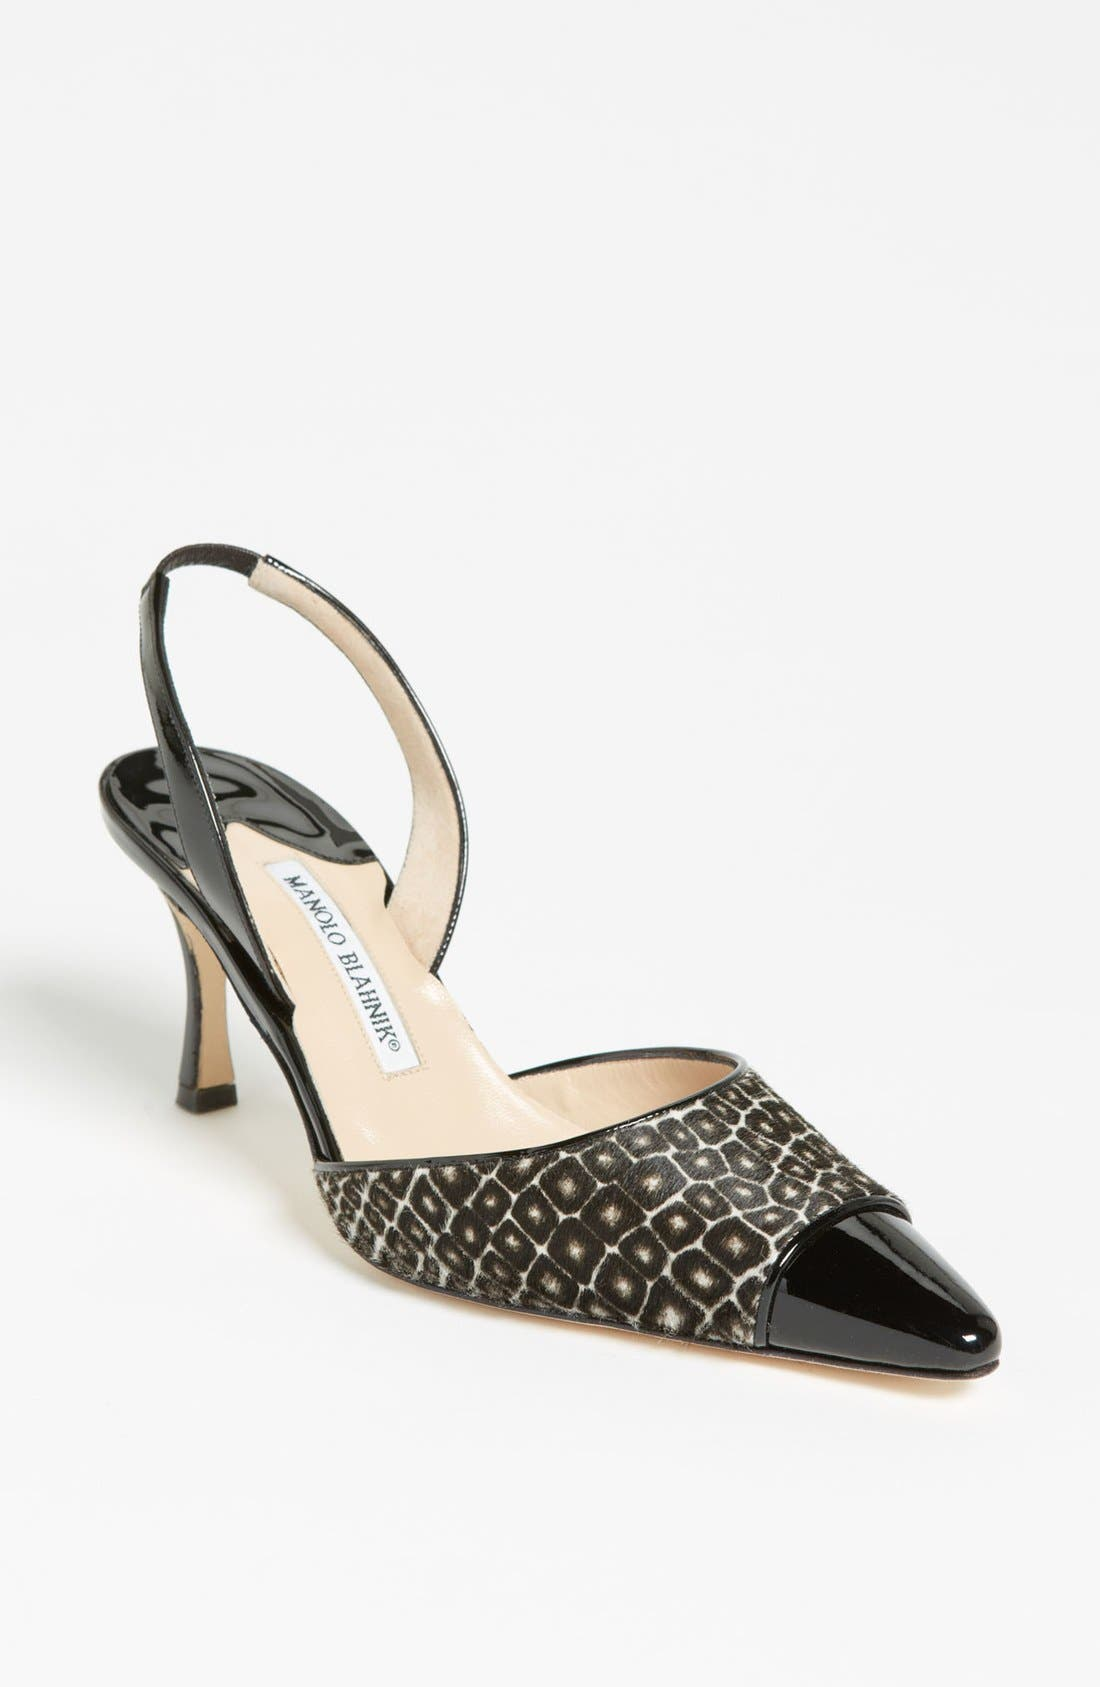 Alternate Image 1 Selected - Manolo Blahnik 'Ploie' Slingback Pump